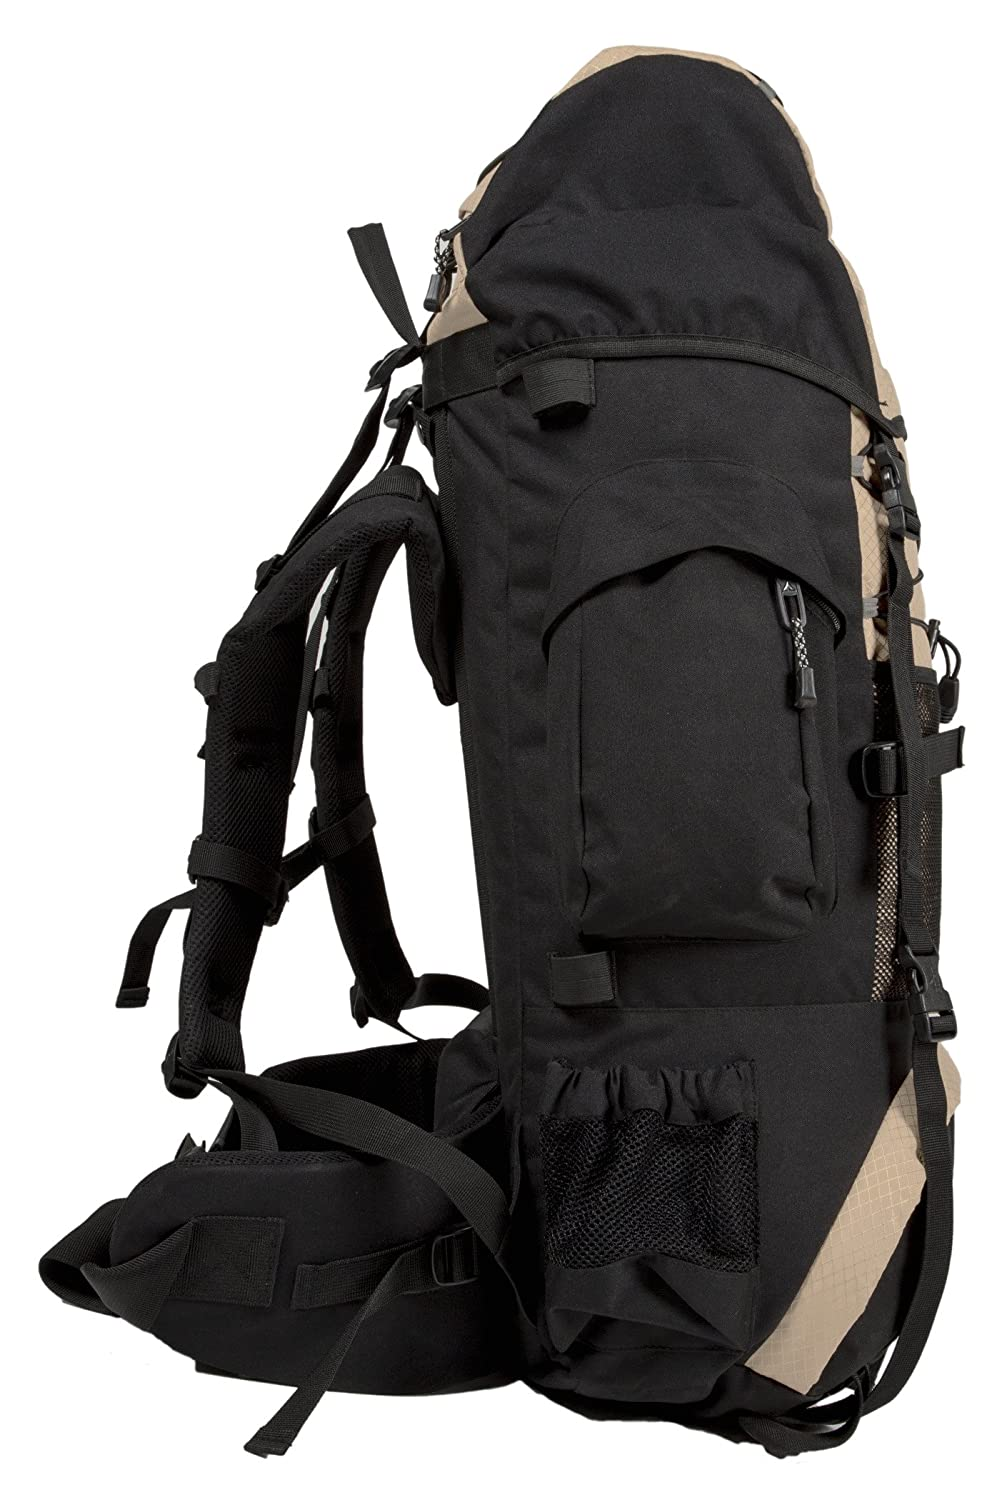 Amazon.com : TETON Sports Scout 3400 Internal Frame Backpack ...